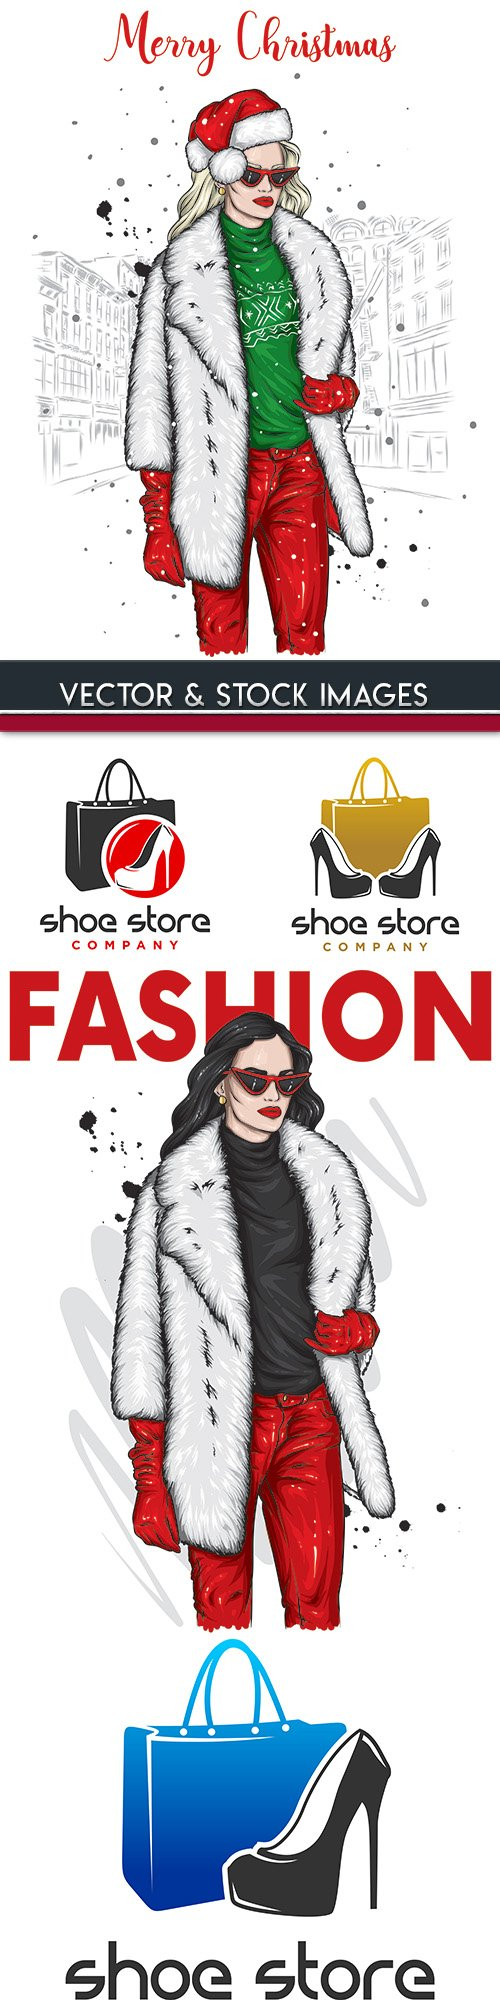 Fashion stylish girls and logo design illustration